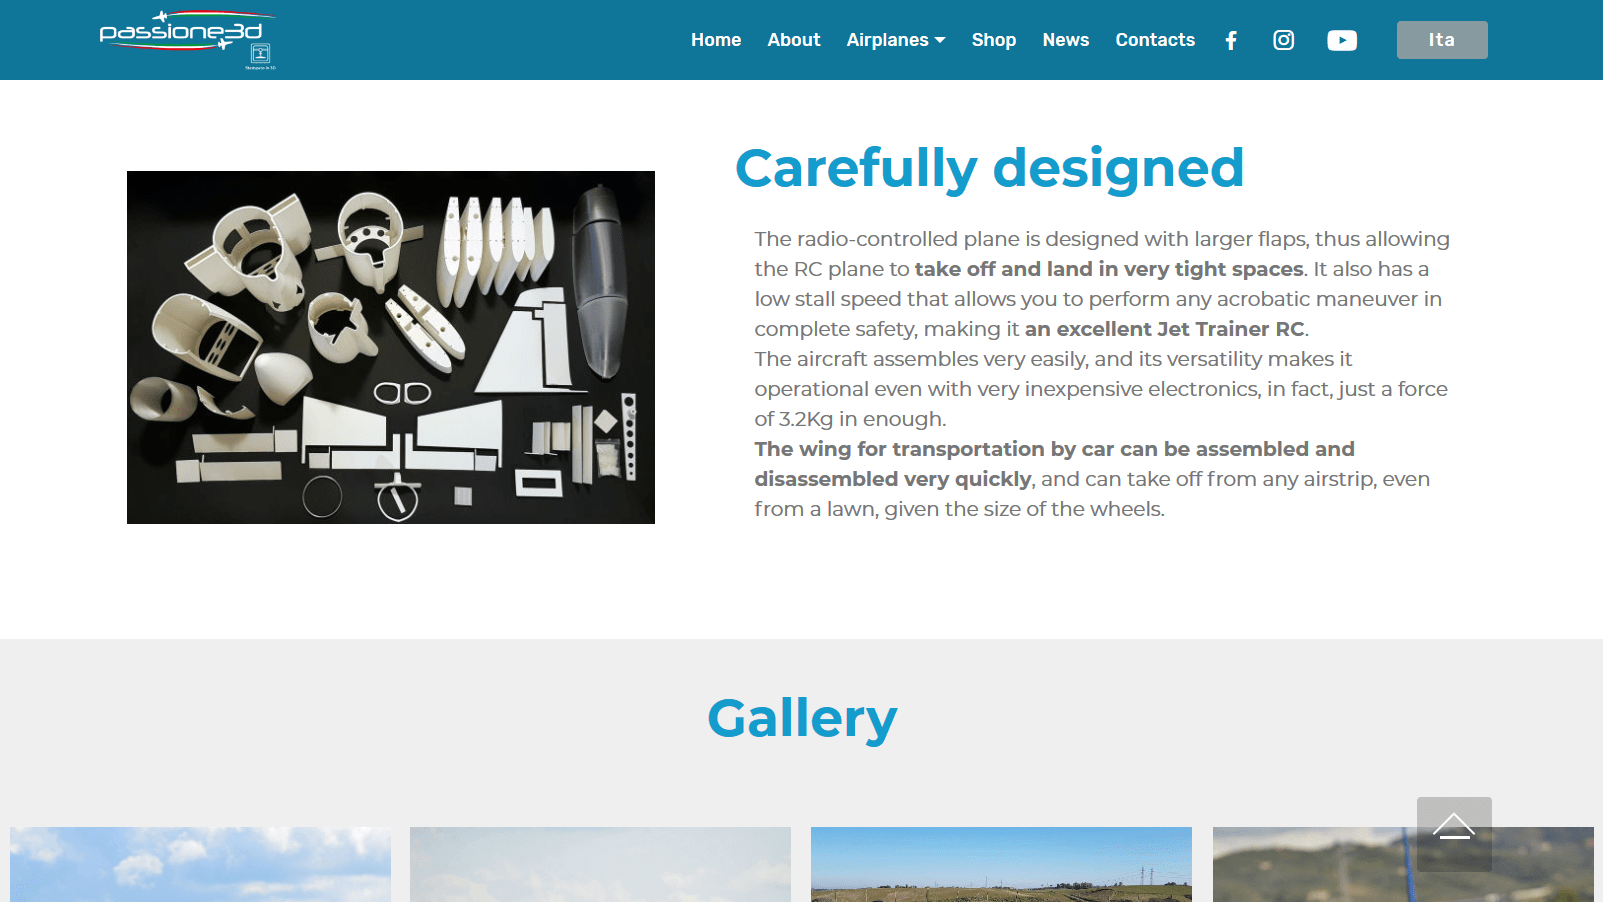 Carefully designed website with gallery